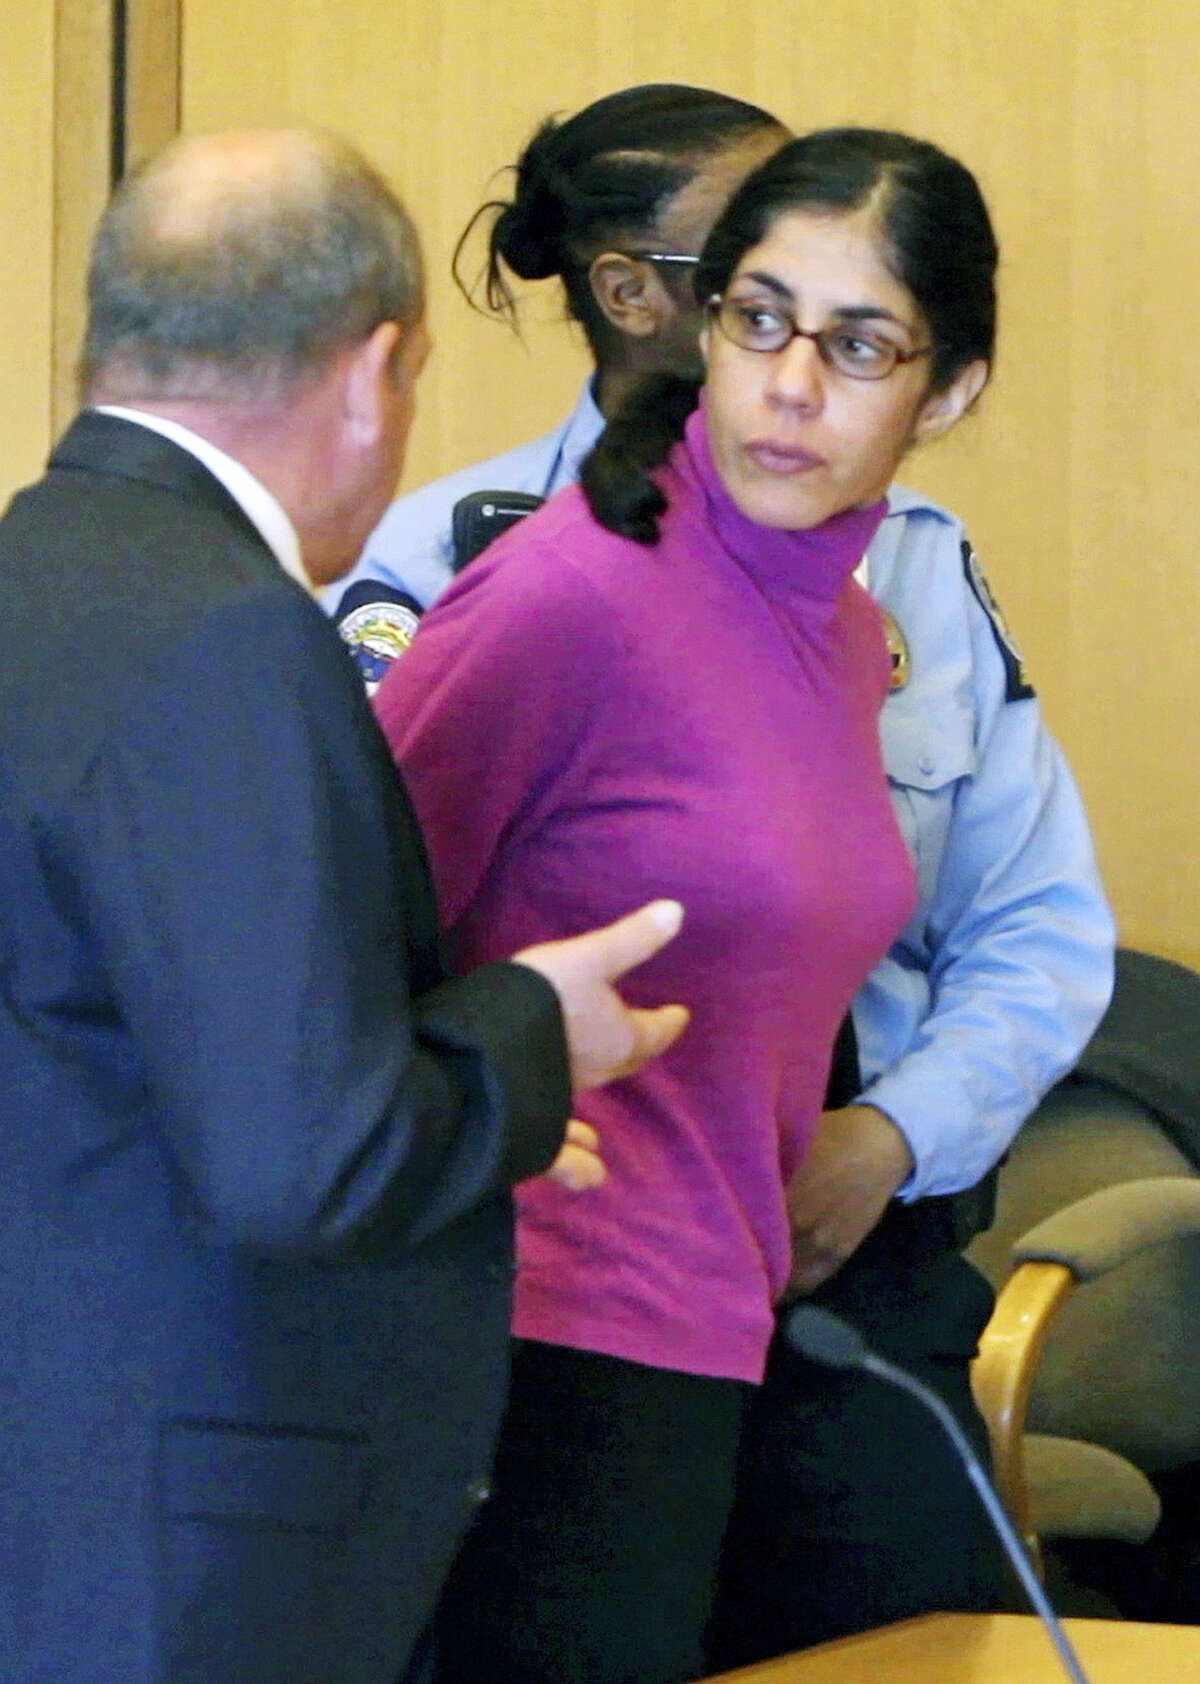 In this April 27, 2012 file photo, Sheila Davalloo looks back in Superior Court in Stamford Conn., following her sentencing for the 2002 murder of Anna Lisa Raymundo. The Connecticut Supreme Court ruled Thursday, Dec. 31, 2015, against an appeal by Davallo, saying that a state law protecting married couple's conversations as confidential does not apply to the convicted killer, who protested the use of self-incriminating comments she made to her husband as evidence against her at trial.